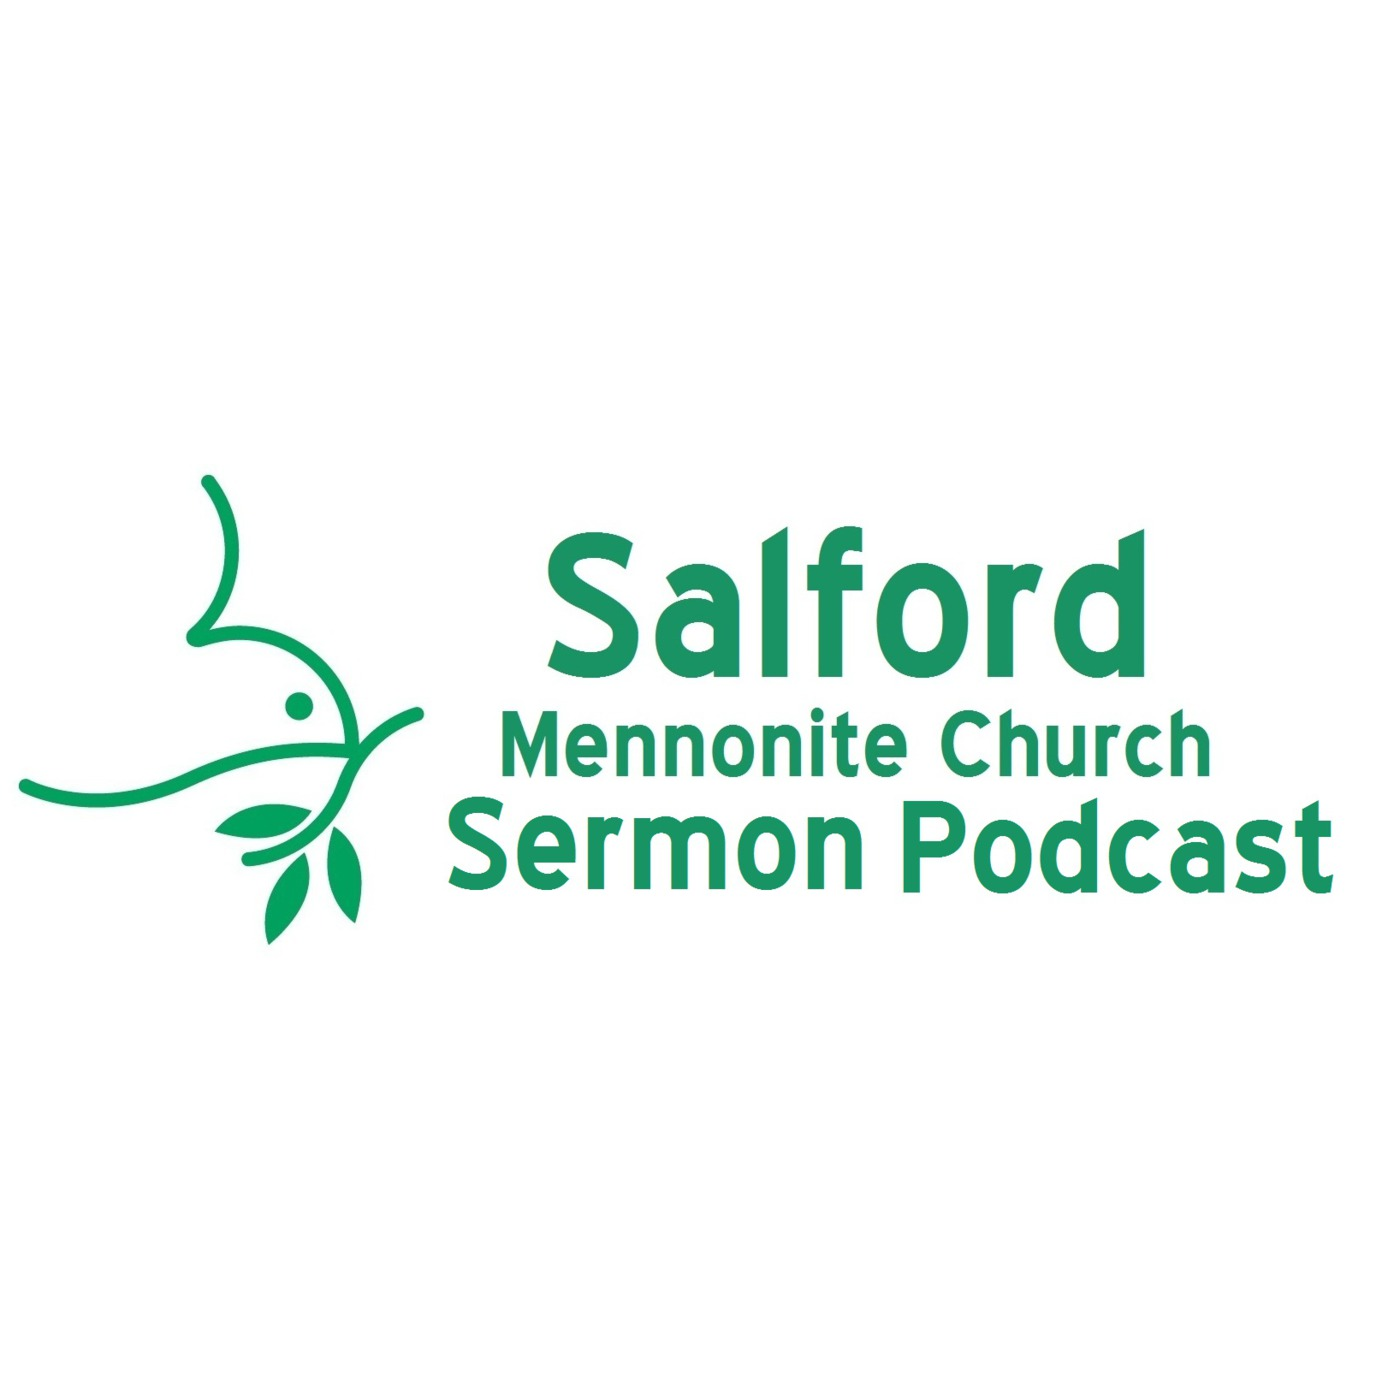 Salford Mennonite Church Sermon Podcast